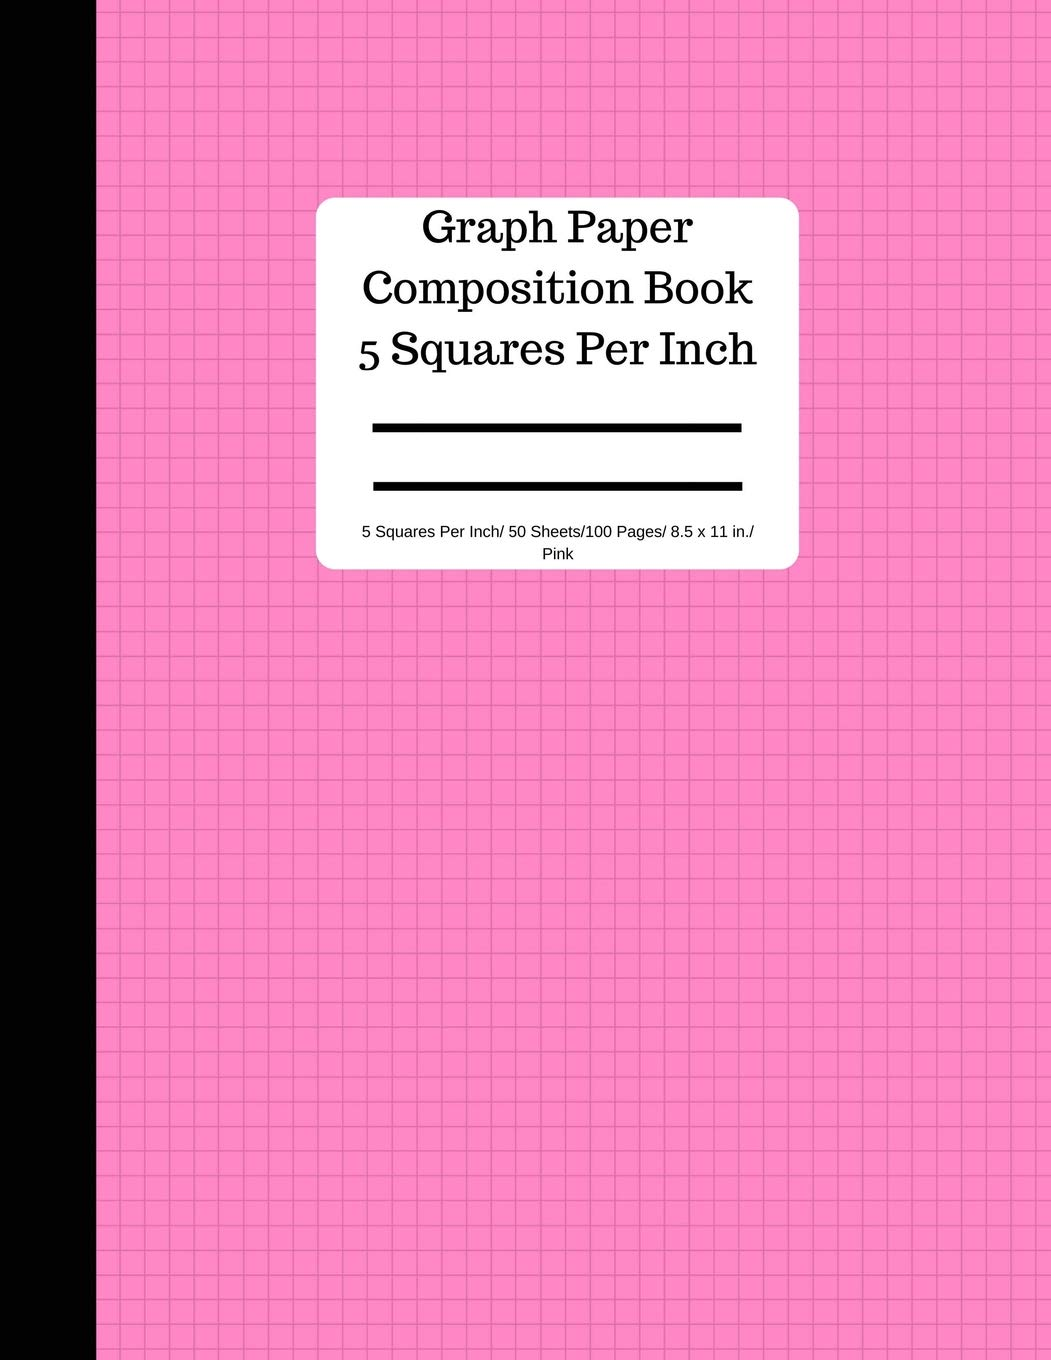 photo regarding Blank 100 Square Grid Printable known as Graph Paper Framework E book 5 Sq. For every Inch/ 50 Sheets